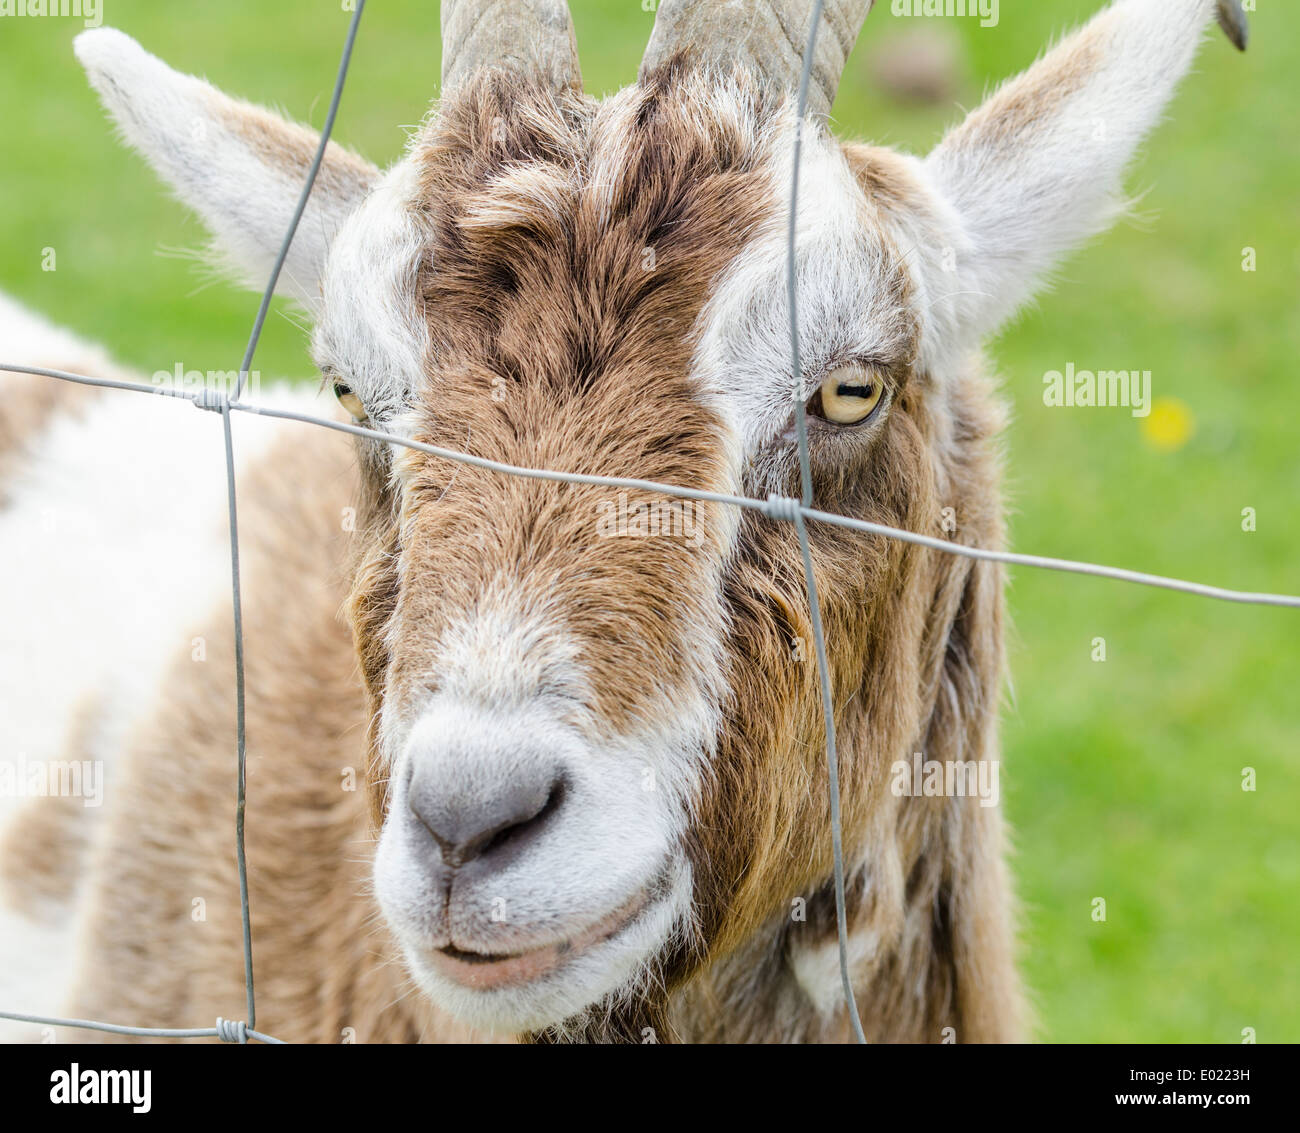 Trapped concept. Head of a brown and white goat in a field behind a wire fence. Stock Photo